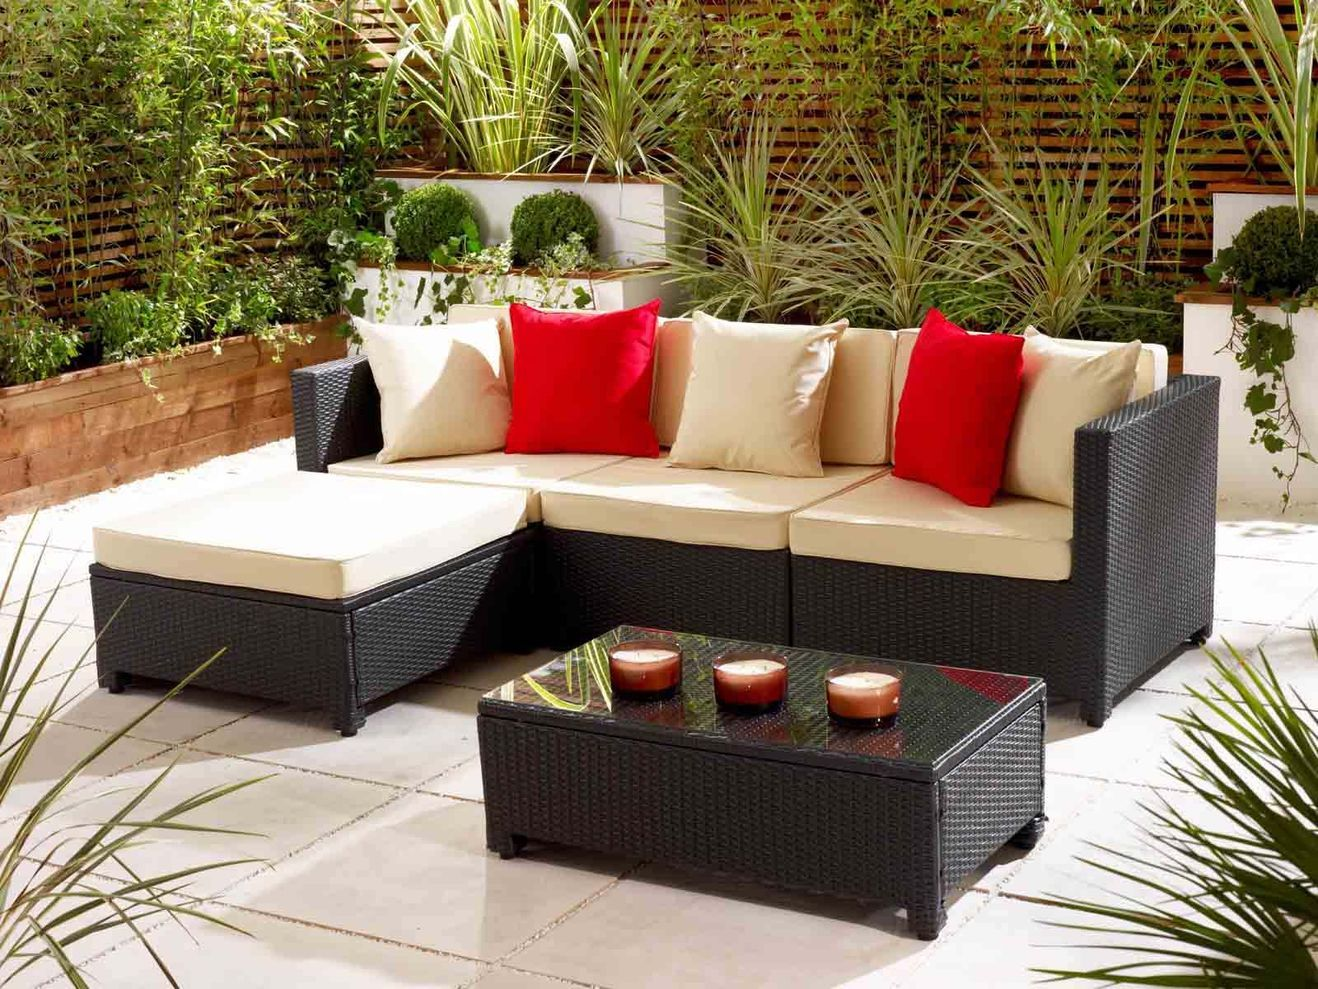 Pin By Qassamcount On Patio Furniture Cheap Patio Furniture Outdoor Patio Furniture Sets Terrace Furniture - Garden Furniture Clearance Burton On Trent